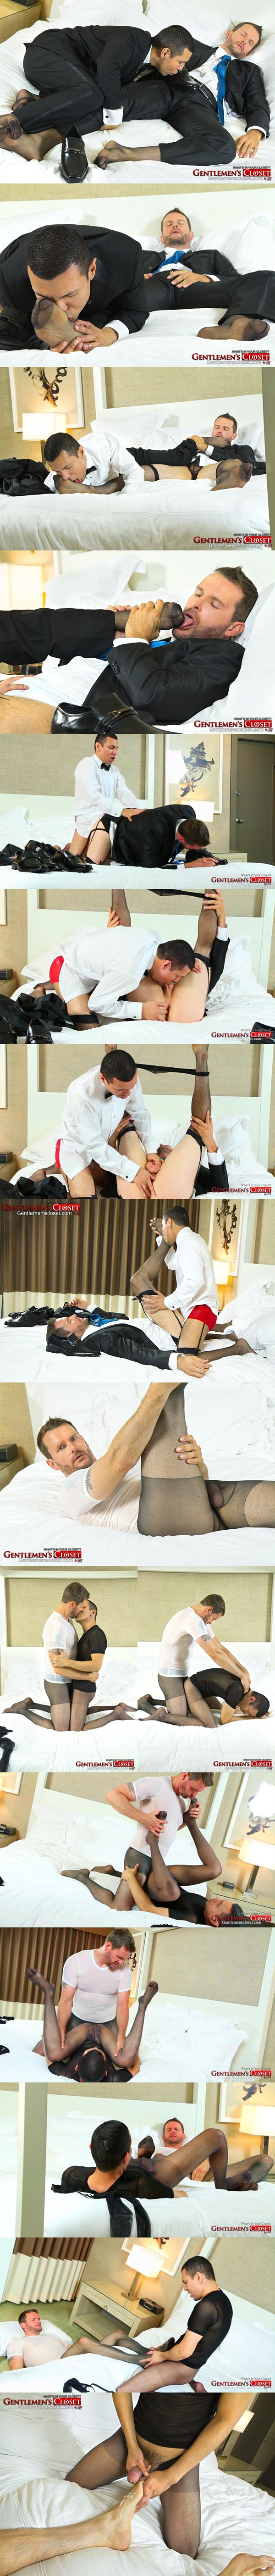 Carson and Fernando Reve worship each other's stockings at Gentlemenscloset 02